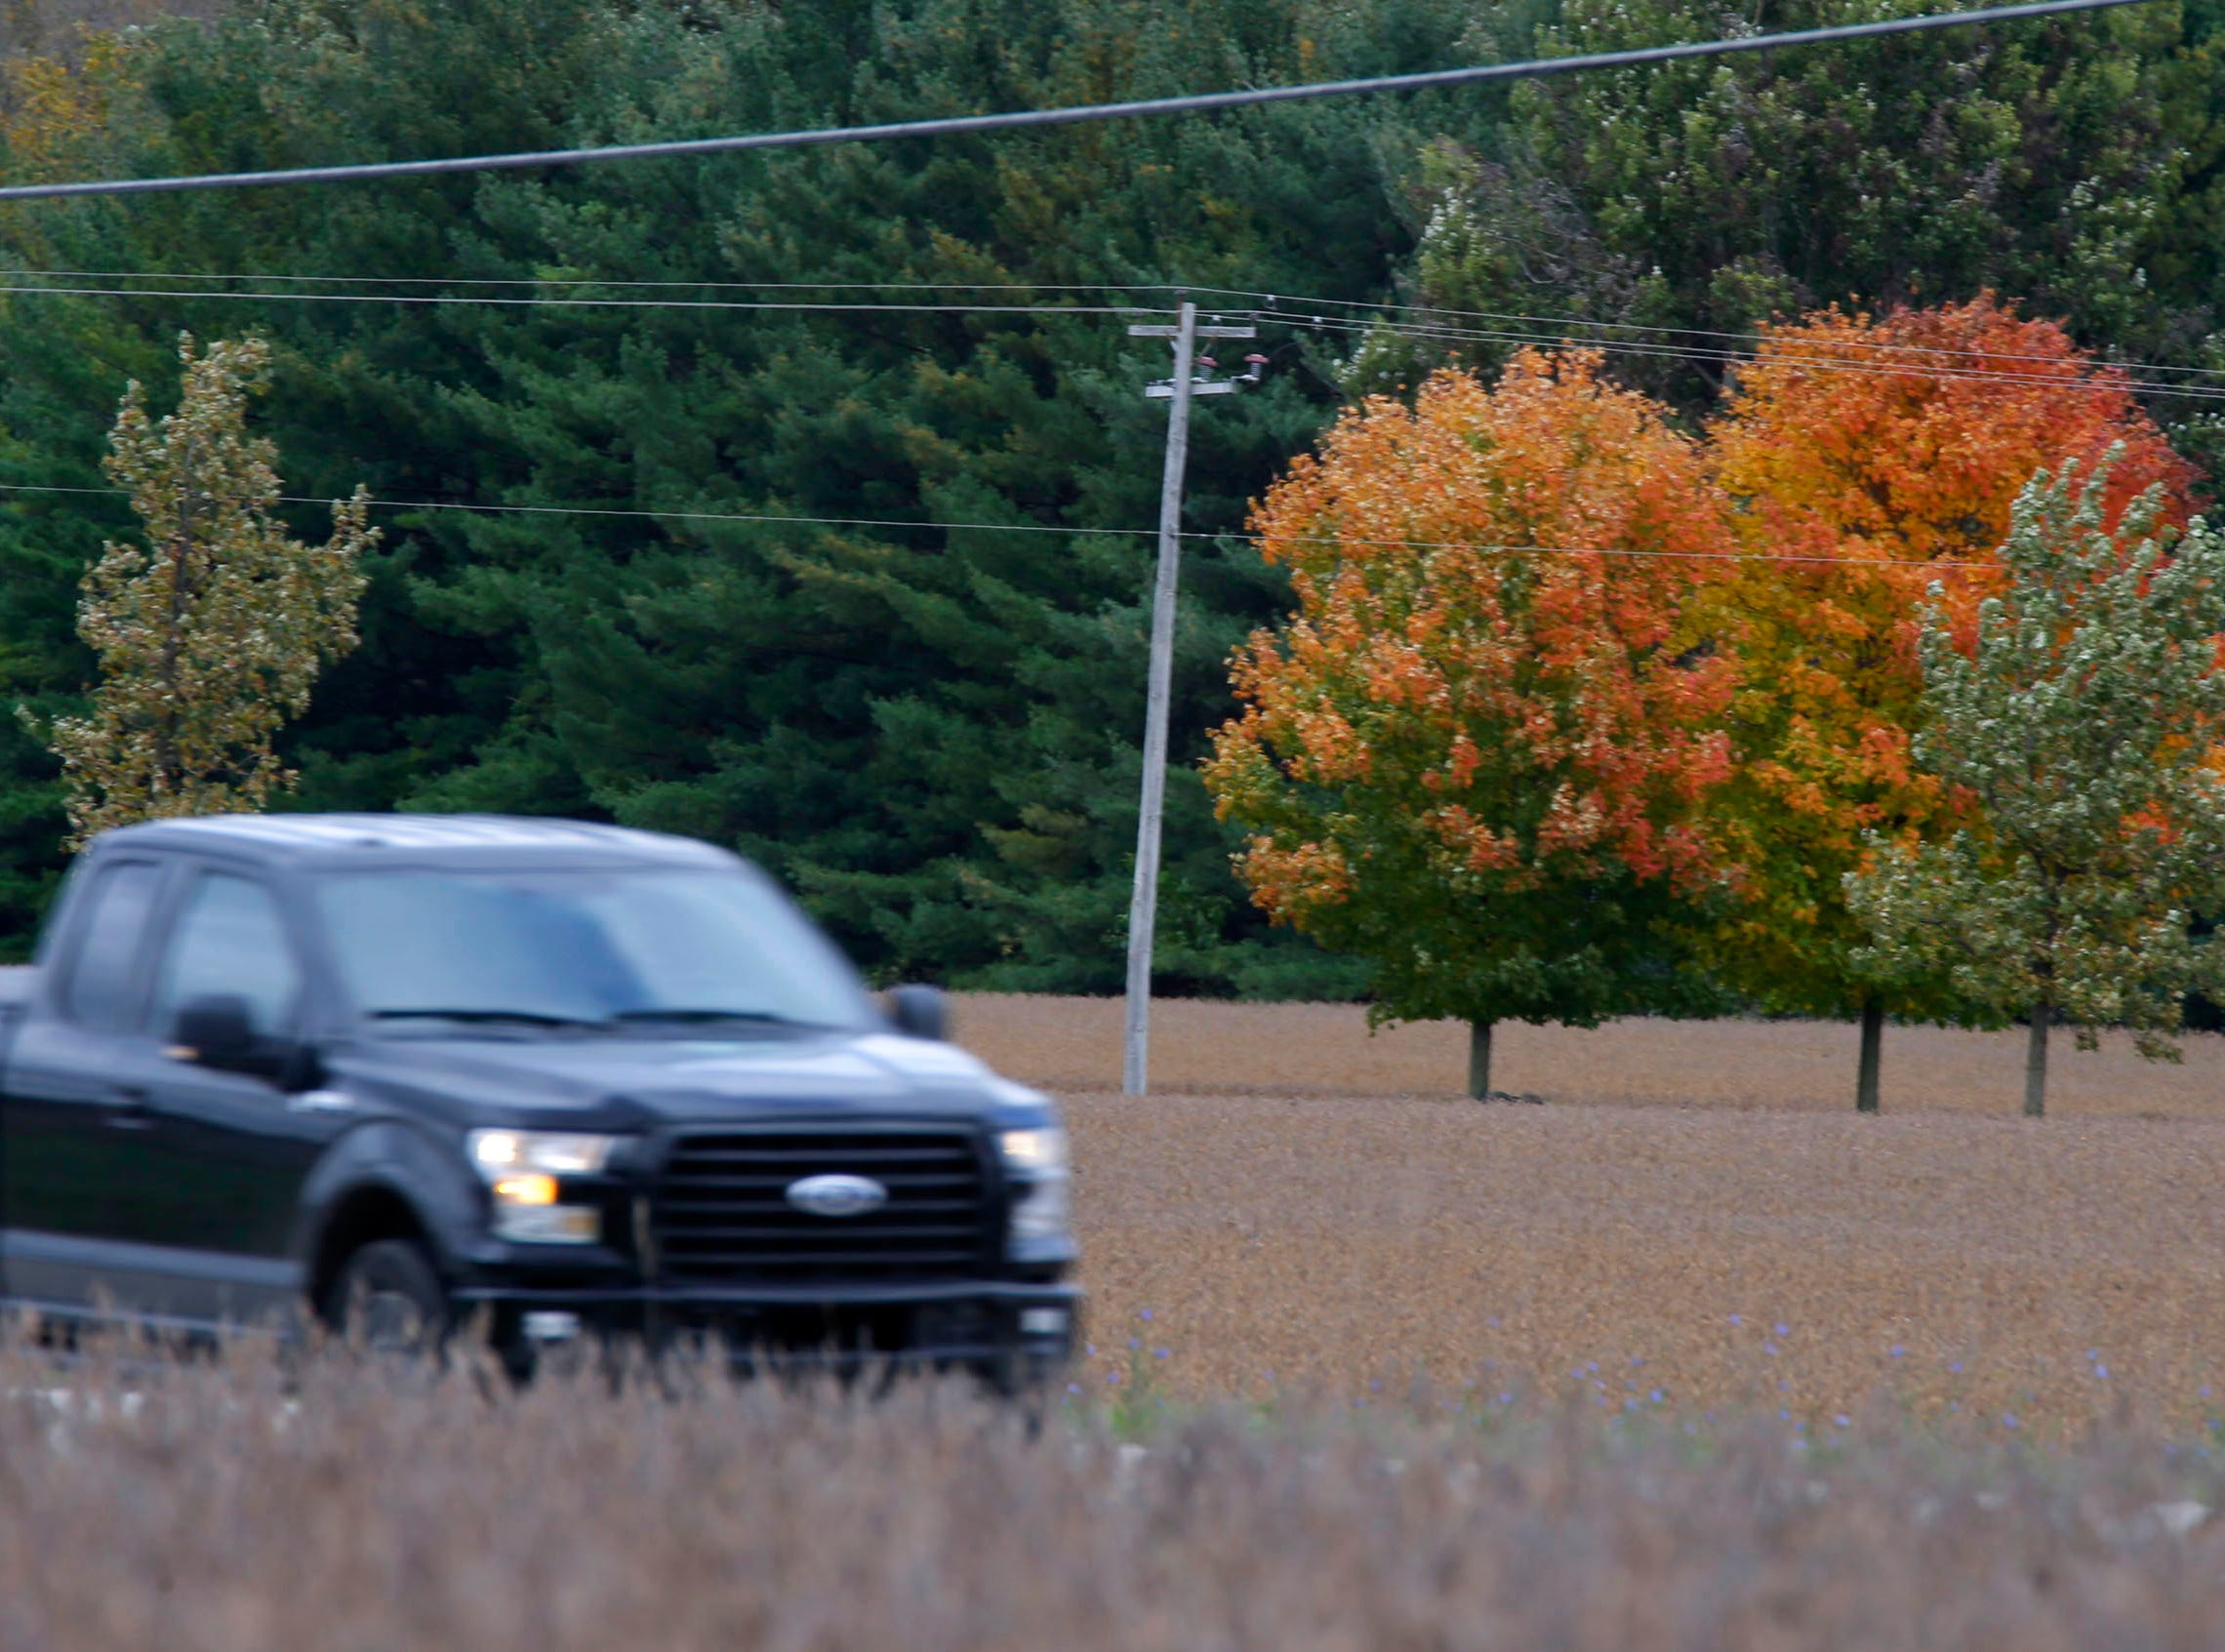 A truck drives by a pair of trees turning their colors near Thursday, October 11, 2018, near Plymouth, Wis.